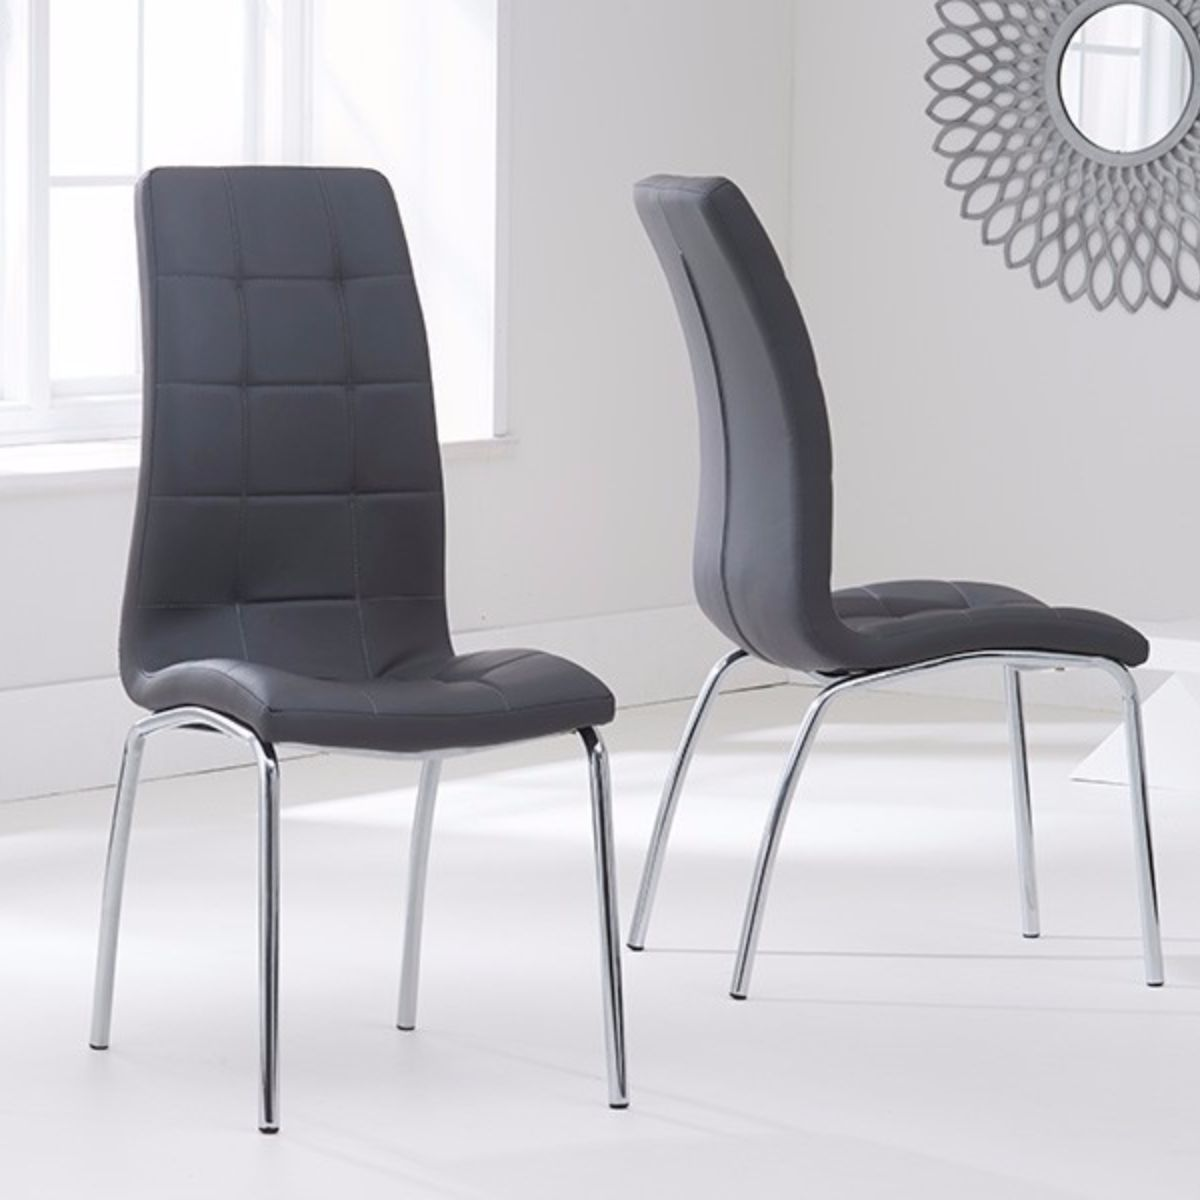 Munich Glass Dining Table with 4 Chairs (Chair Colour: Grey)